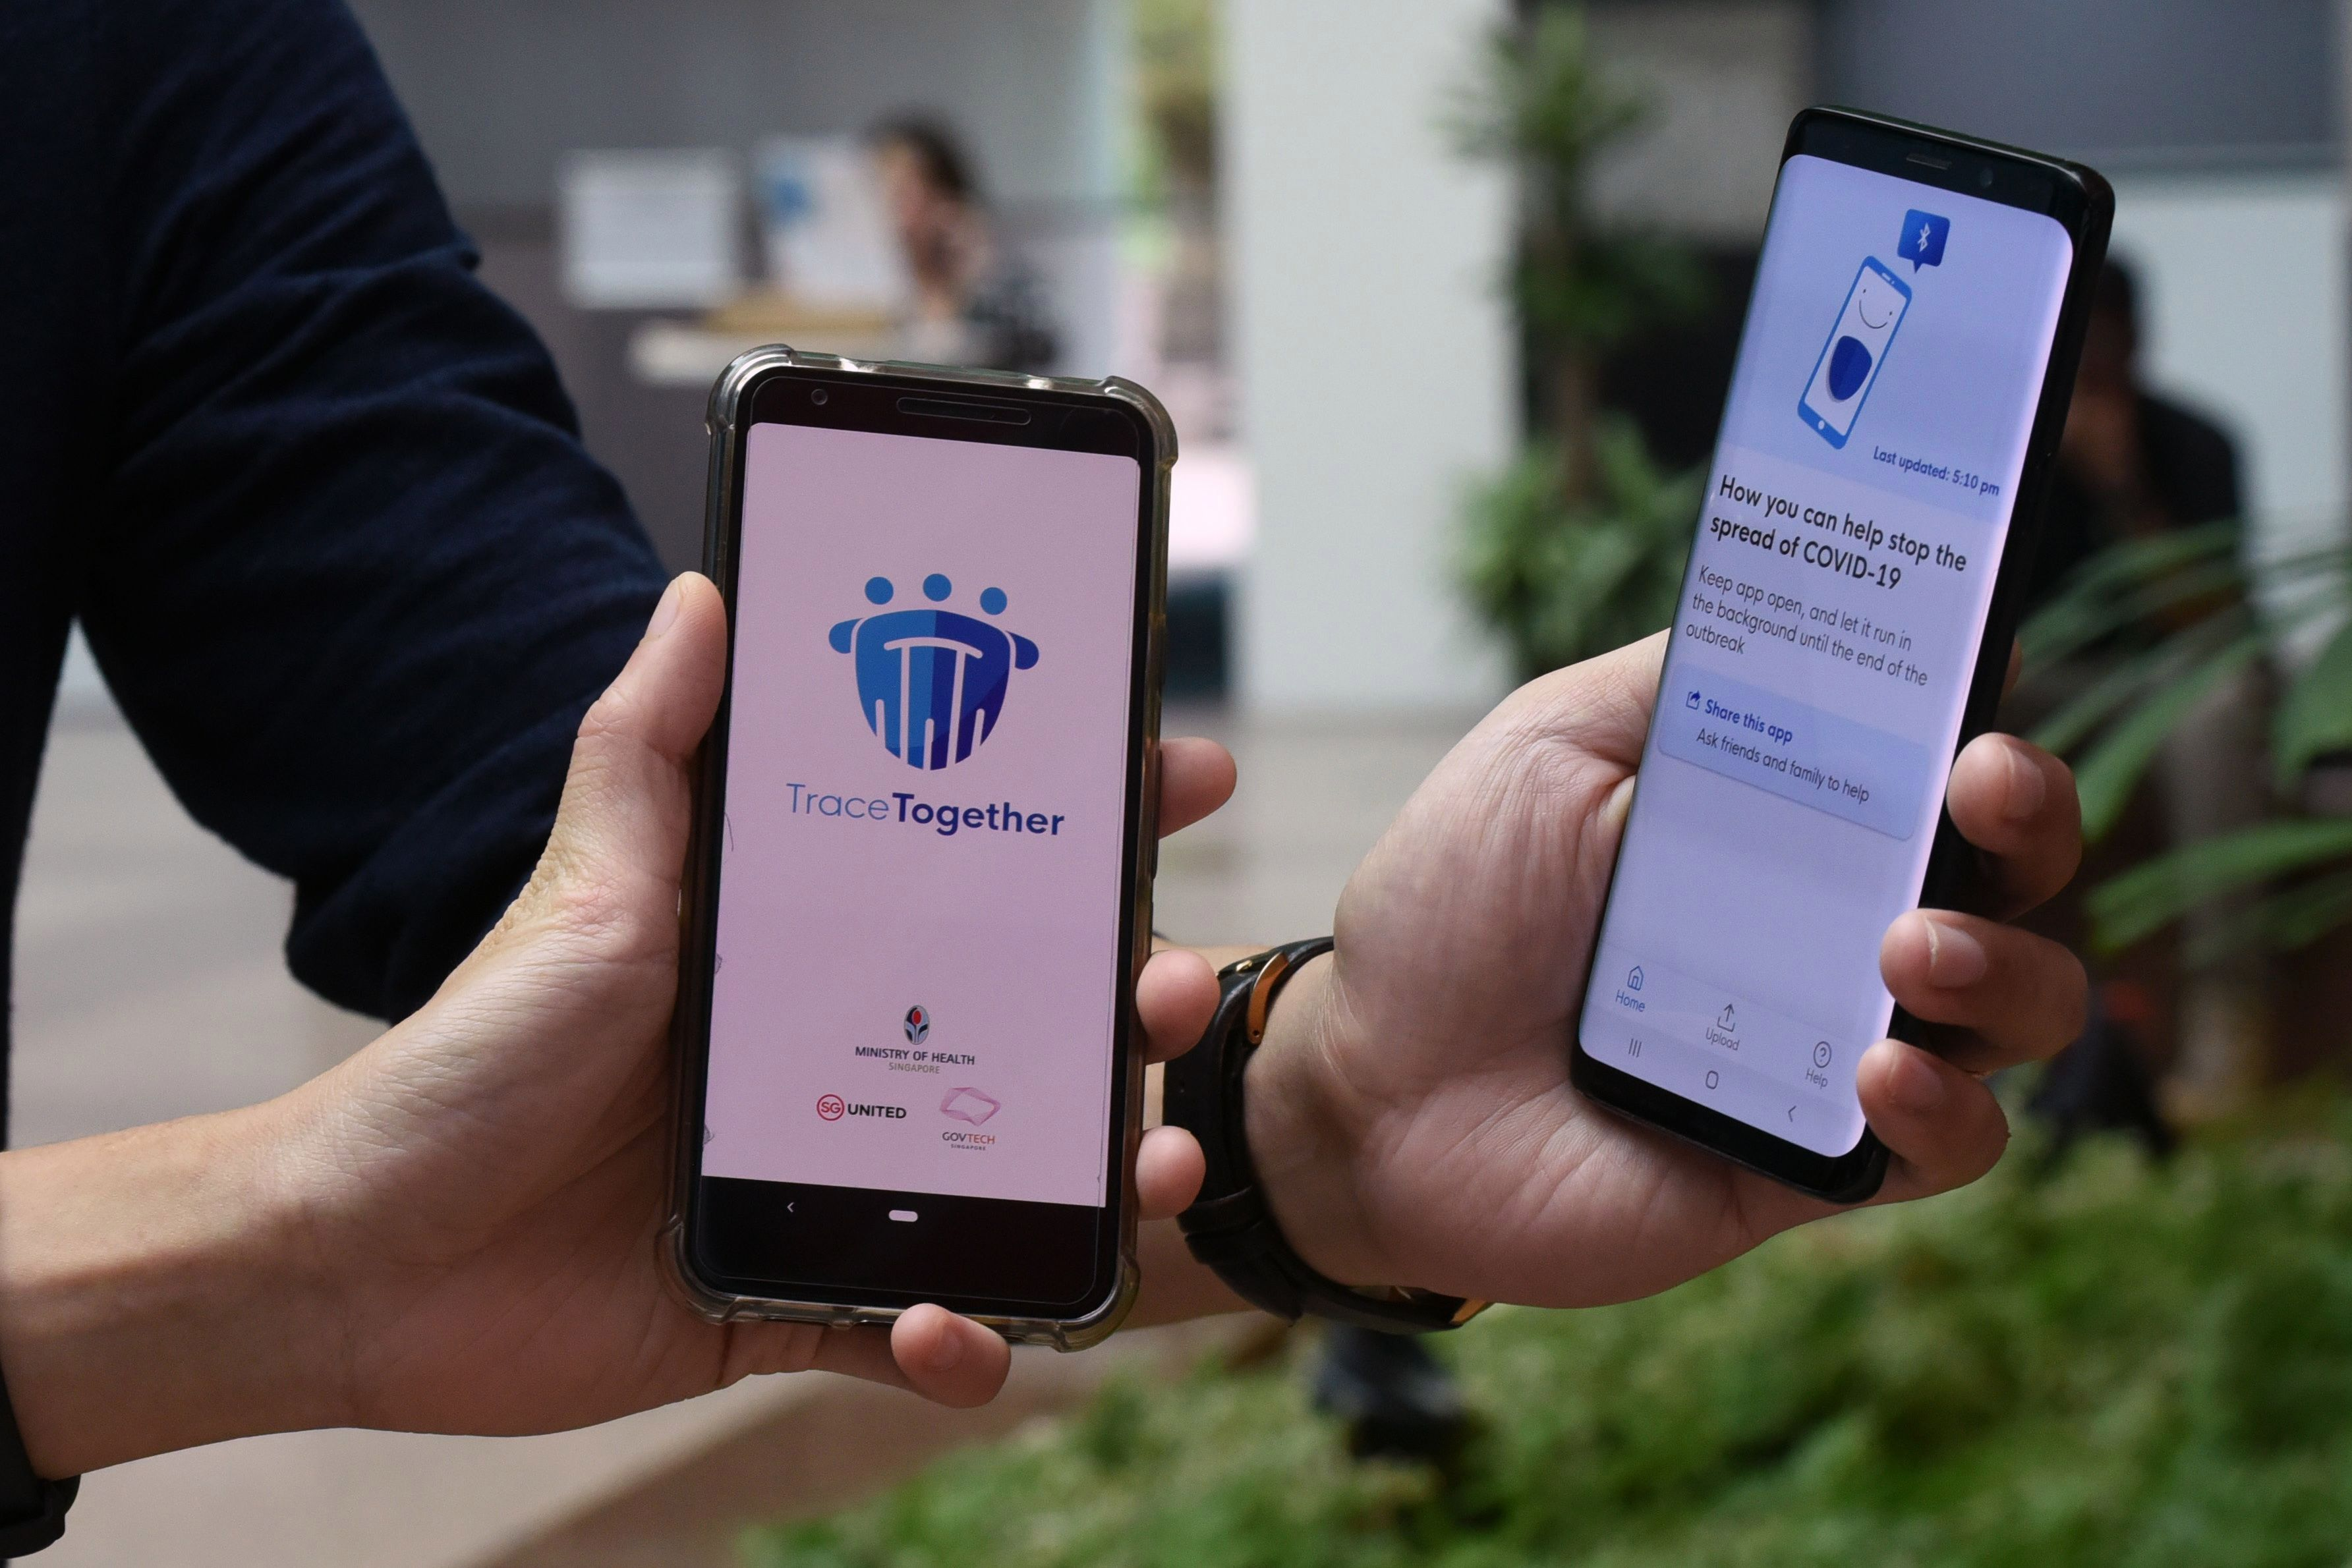 The country has developed a new app which uses Bluetooth signals to trace who a person may have come into contact with